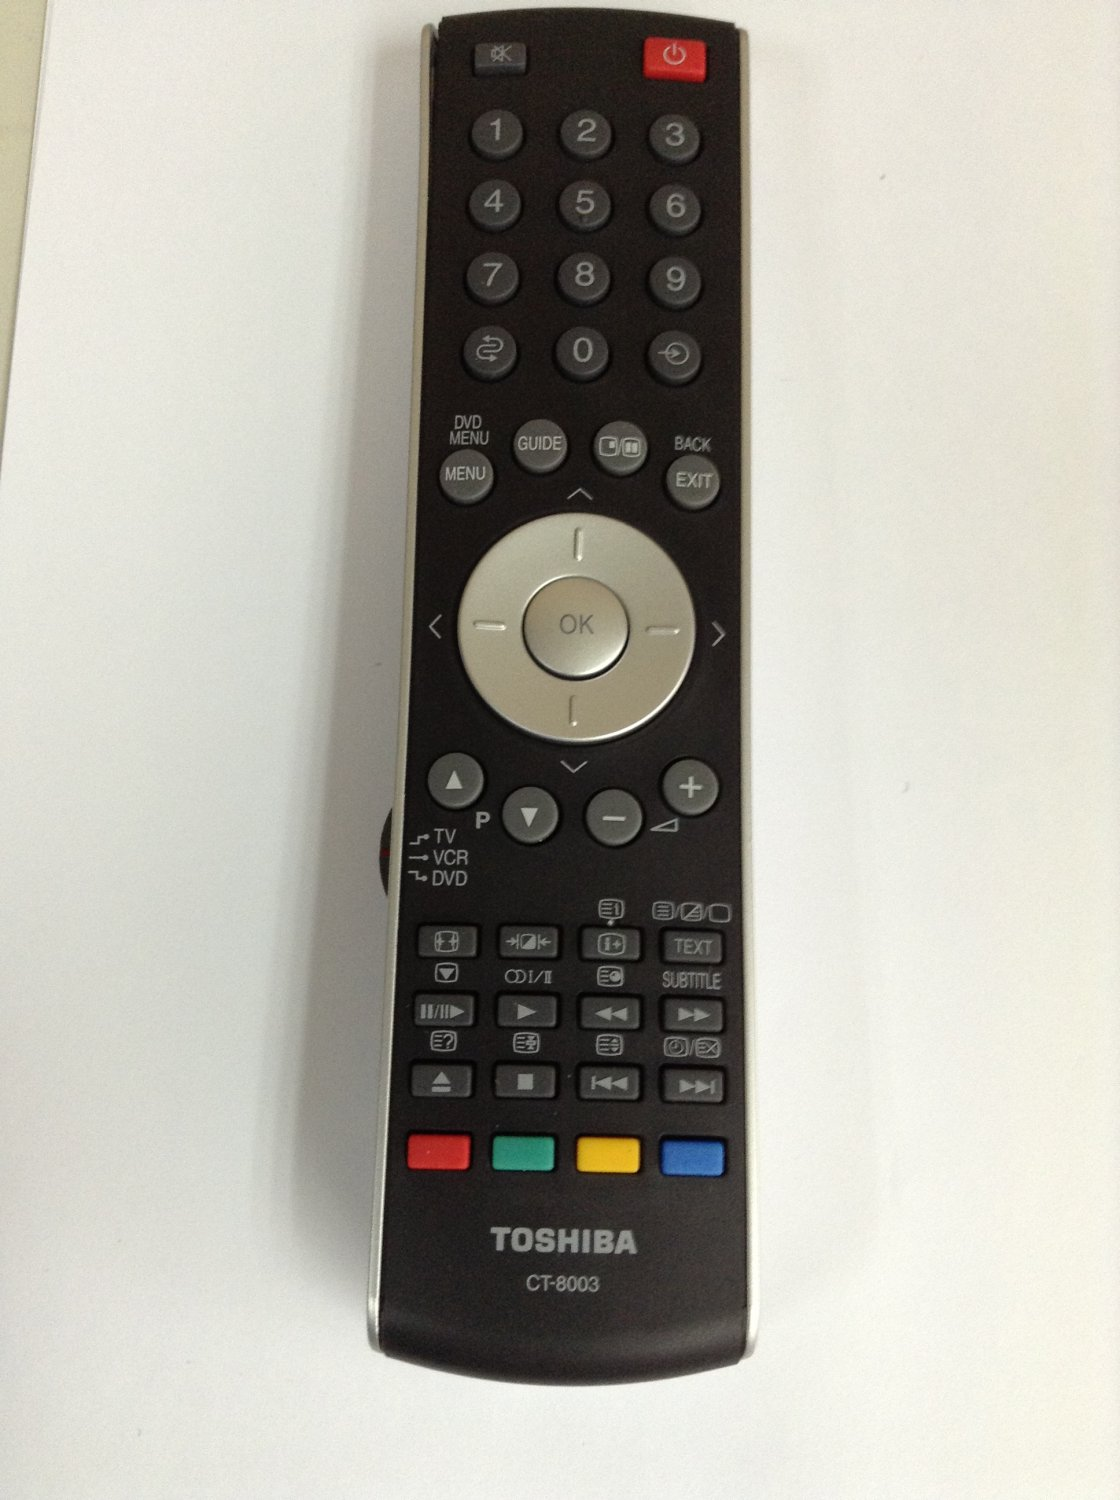 REMOTE CONTROL FOR TOSHIBA TV CT-90345 46SL733 46SL736 CT-90233 62HM95 56HM195